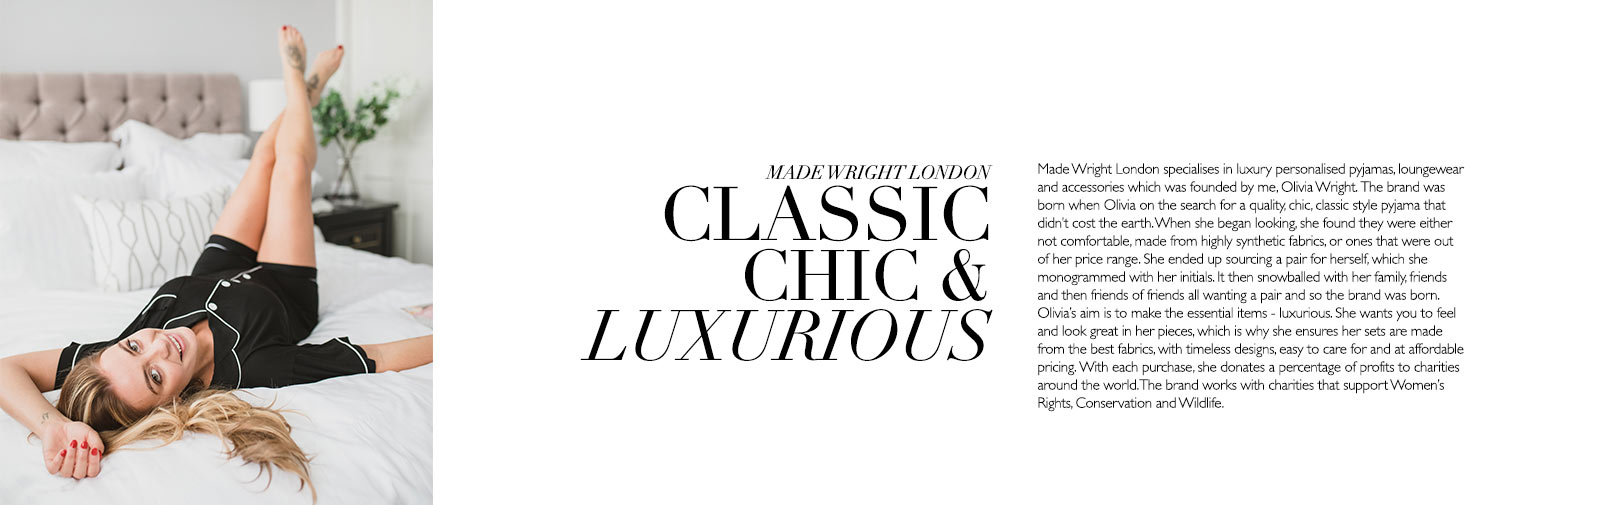 MADE WRIGHT LONDON - CLASSIC CHIC & LUXURIOUS - Made Wright London specialises in luxury personalised pyjamas, loungewear and accessories which was founded by me, Olivia Wright.